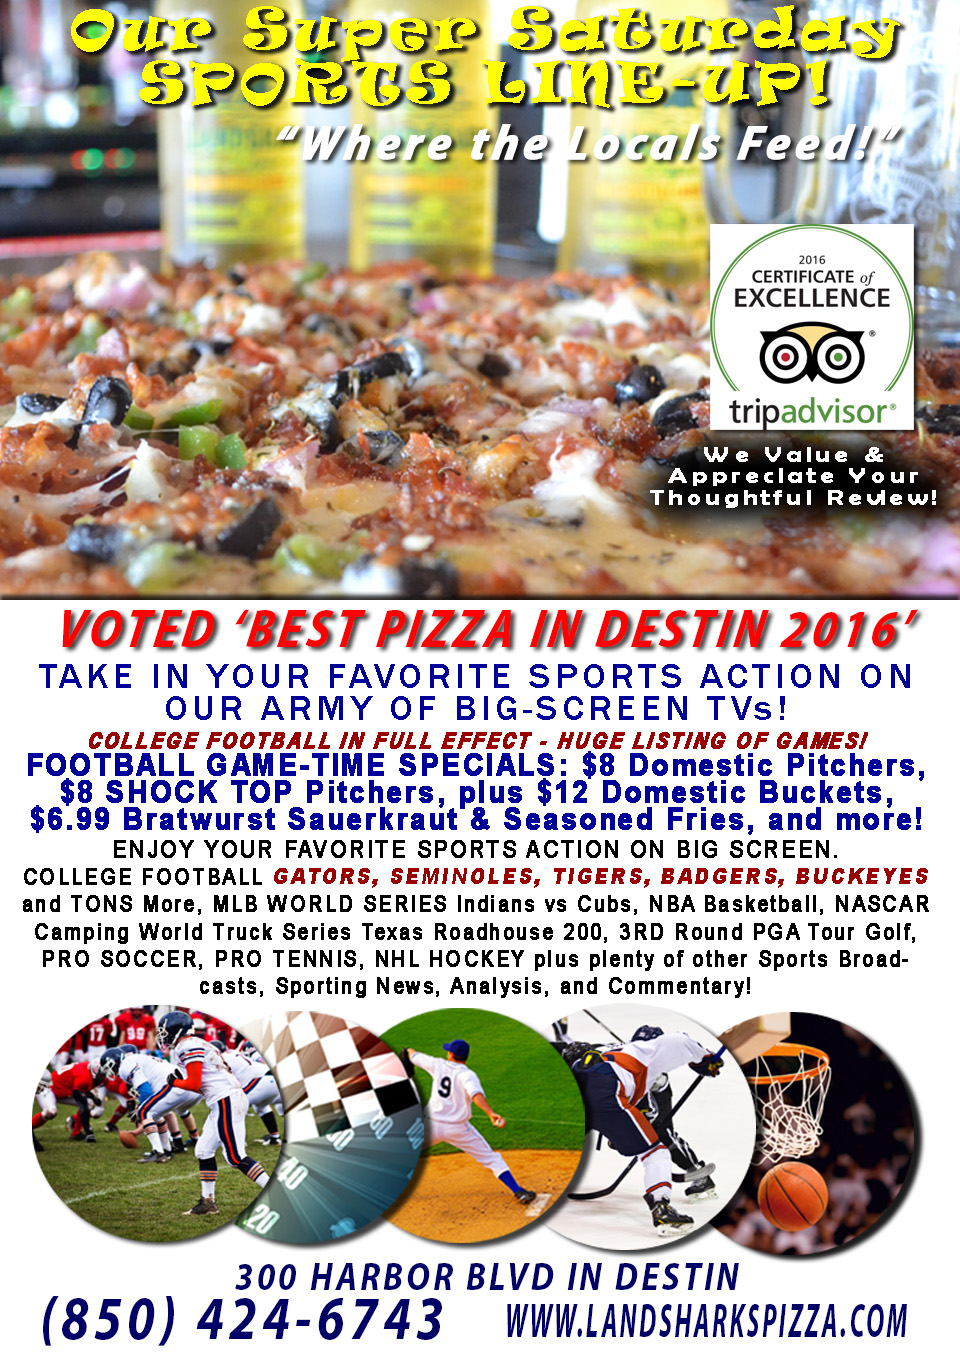 destin-fl-sports-bar-landsharks-pizza-college-football-saturdays-10-29-16a